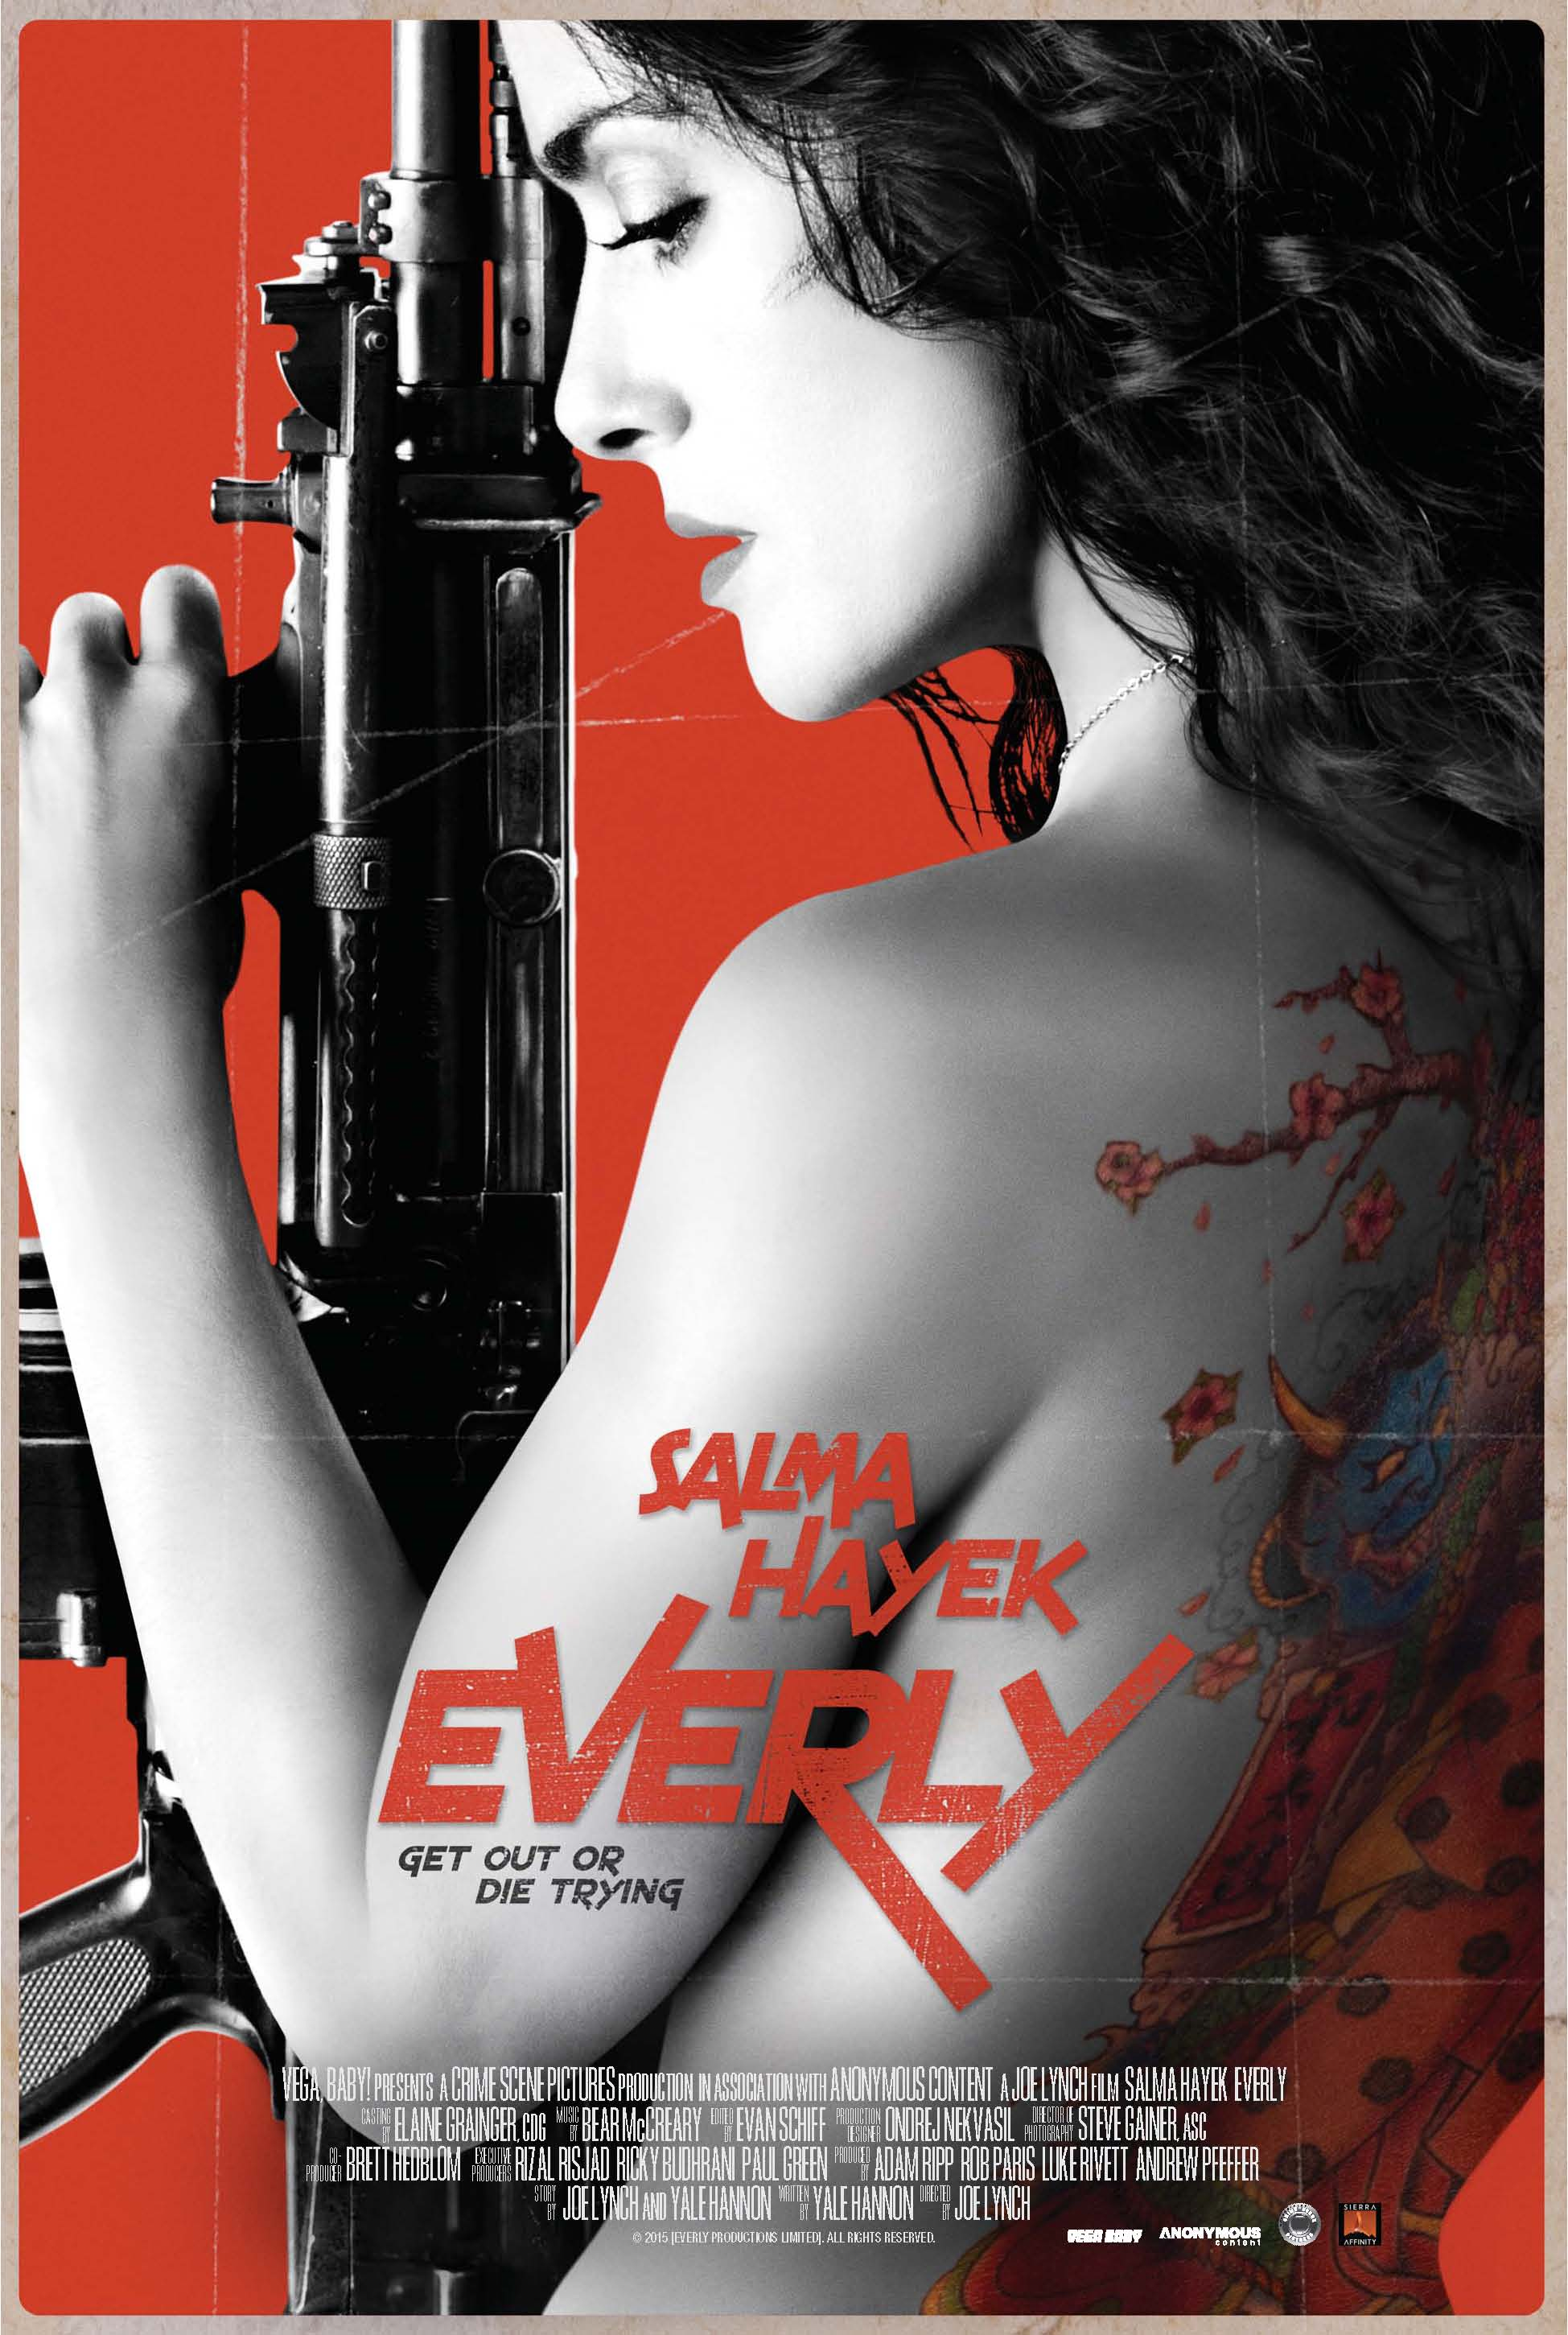 EVERLY Final international Poster11 - Groove to Everly's Mike Relm Remix Trailer; Theater Listings Now Live!